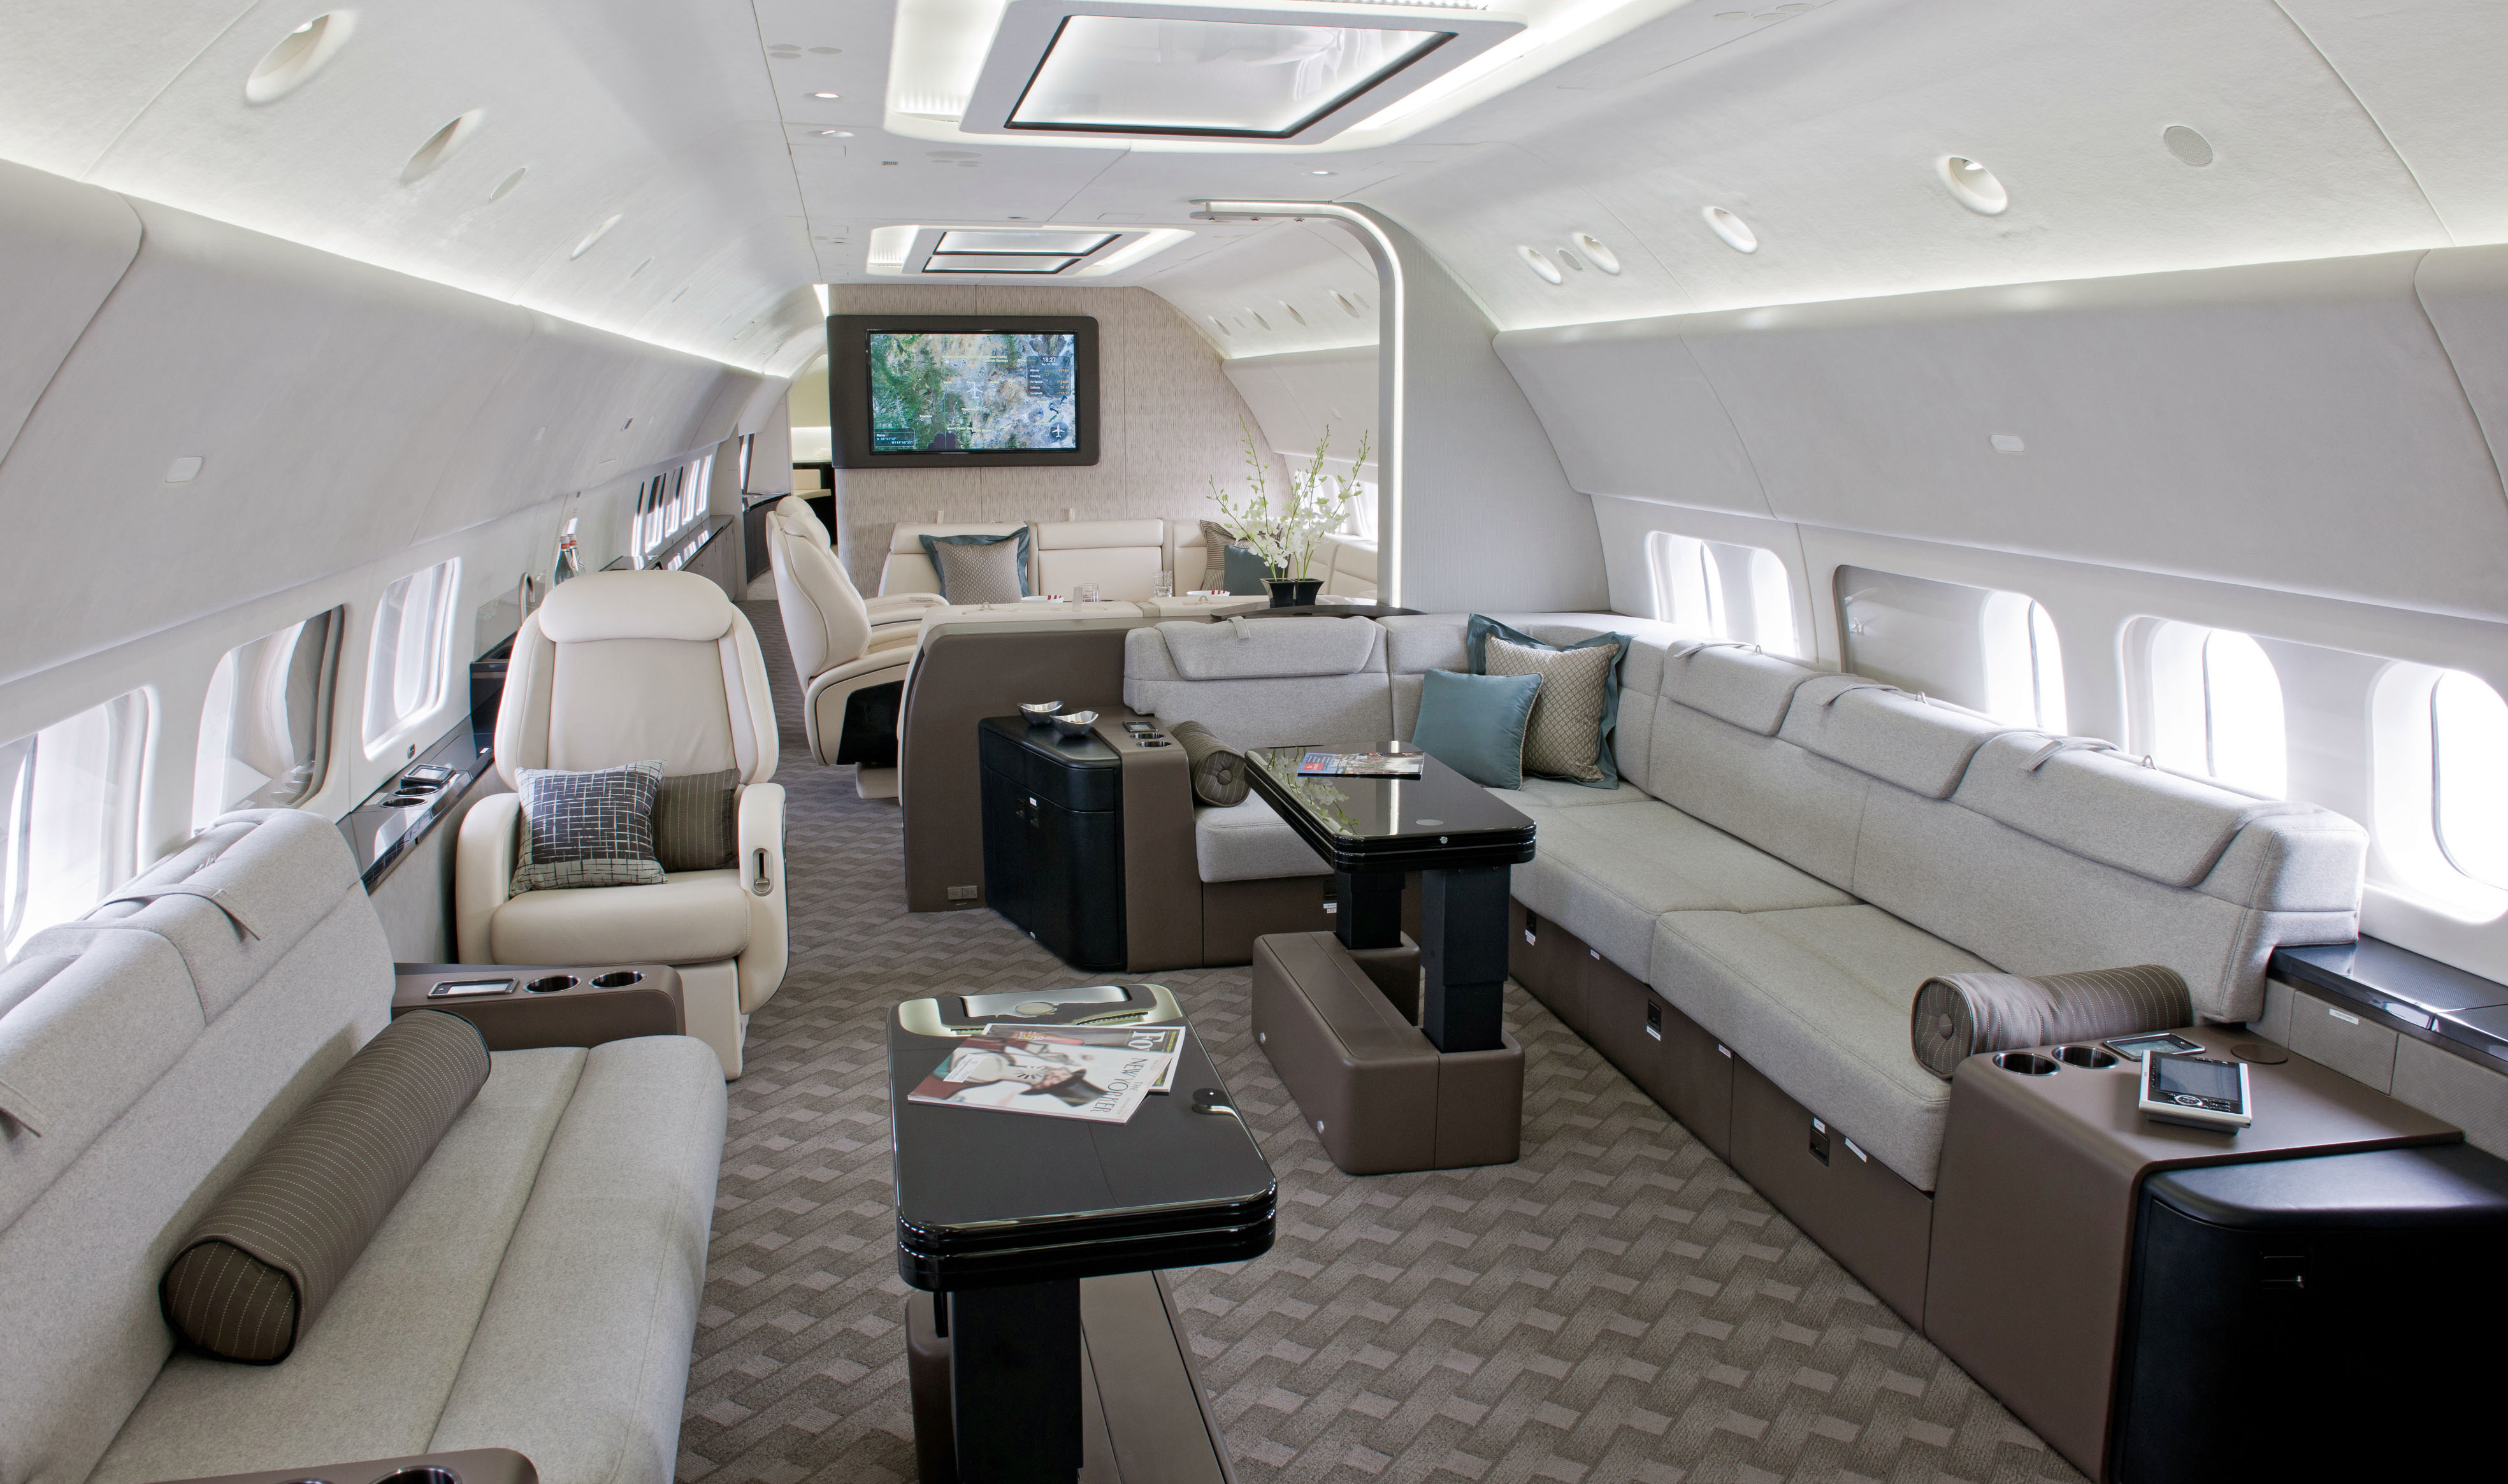 Luxury Just Became More Luxurious